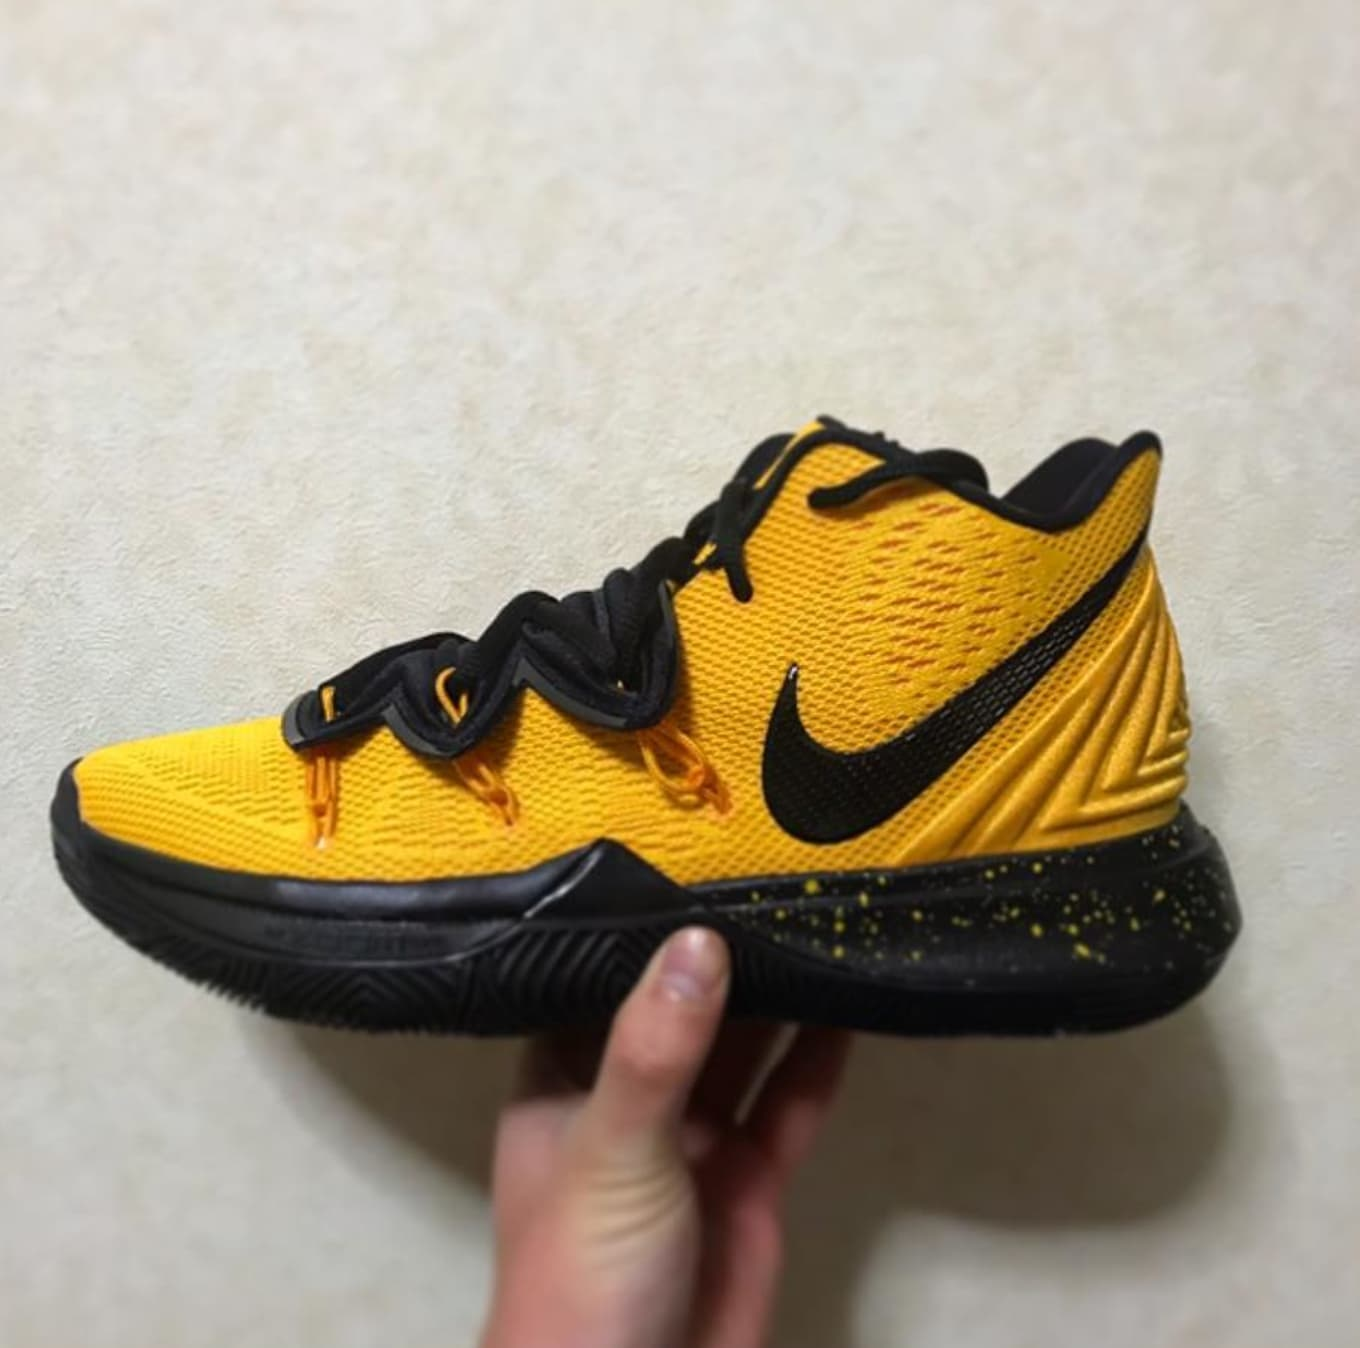 best website 876ae b07ea NIKEiD By You Kyrie 5 Designs | Sole Collector